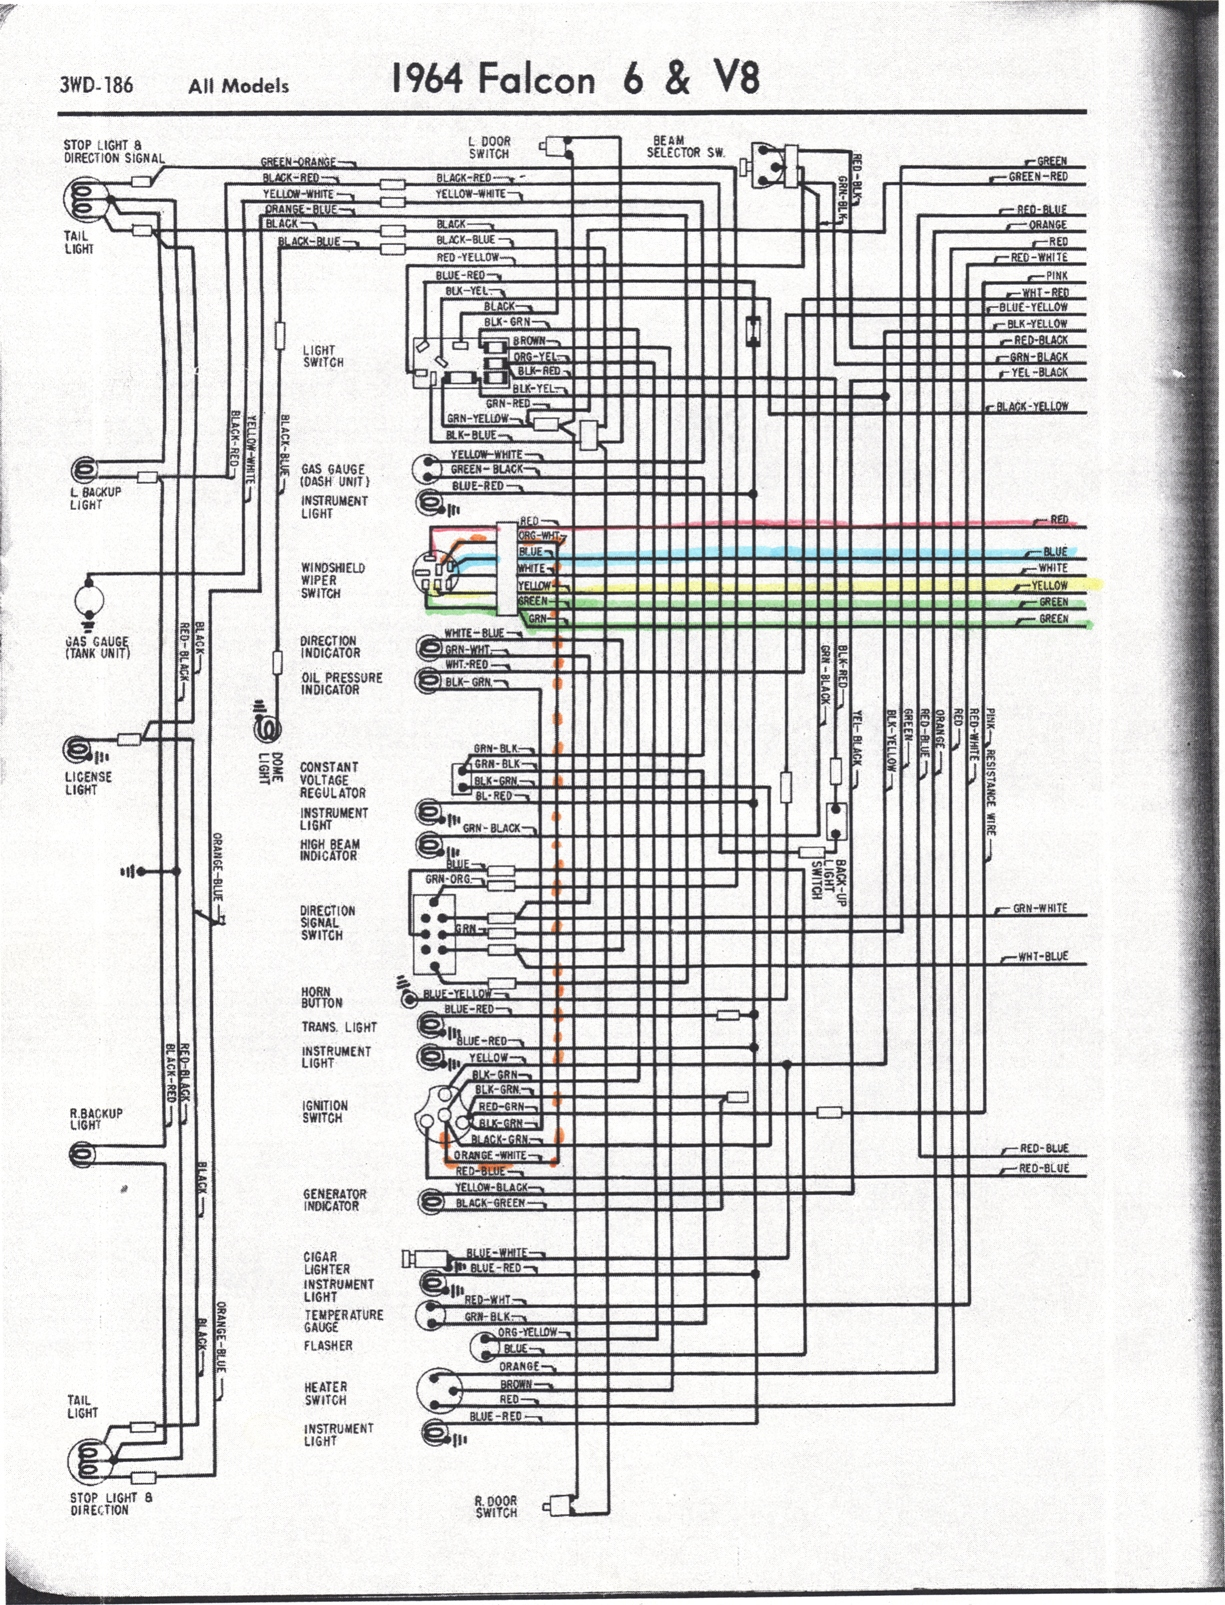 64_Falcon 1 falcon diagrams 1964 ford falcon wiring diagram at fashall.co